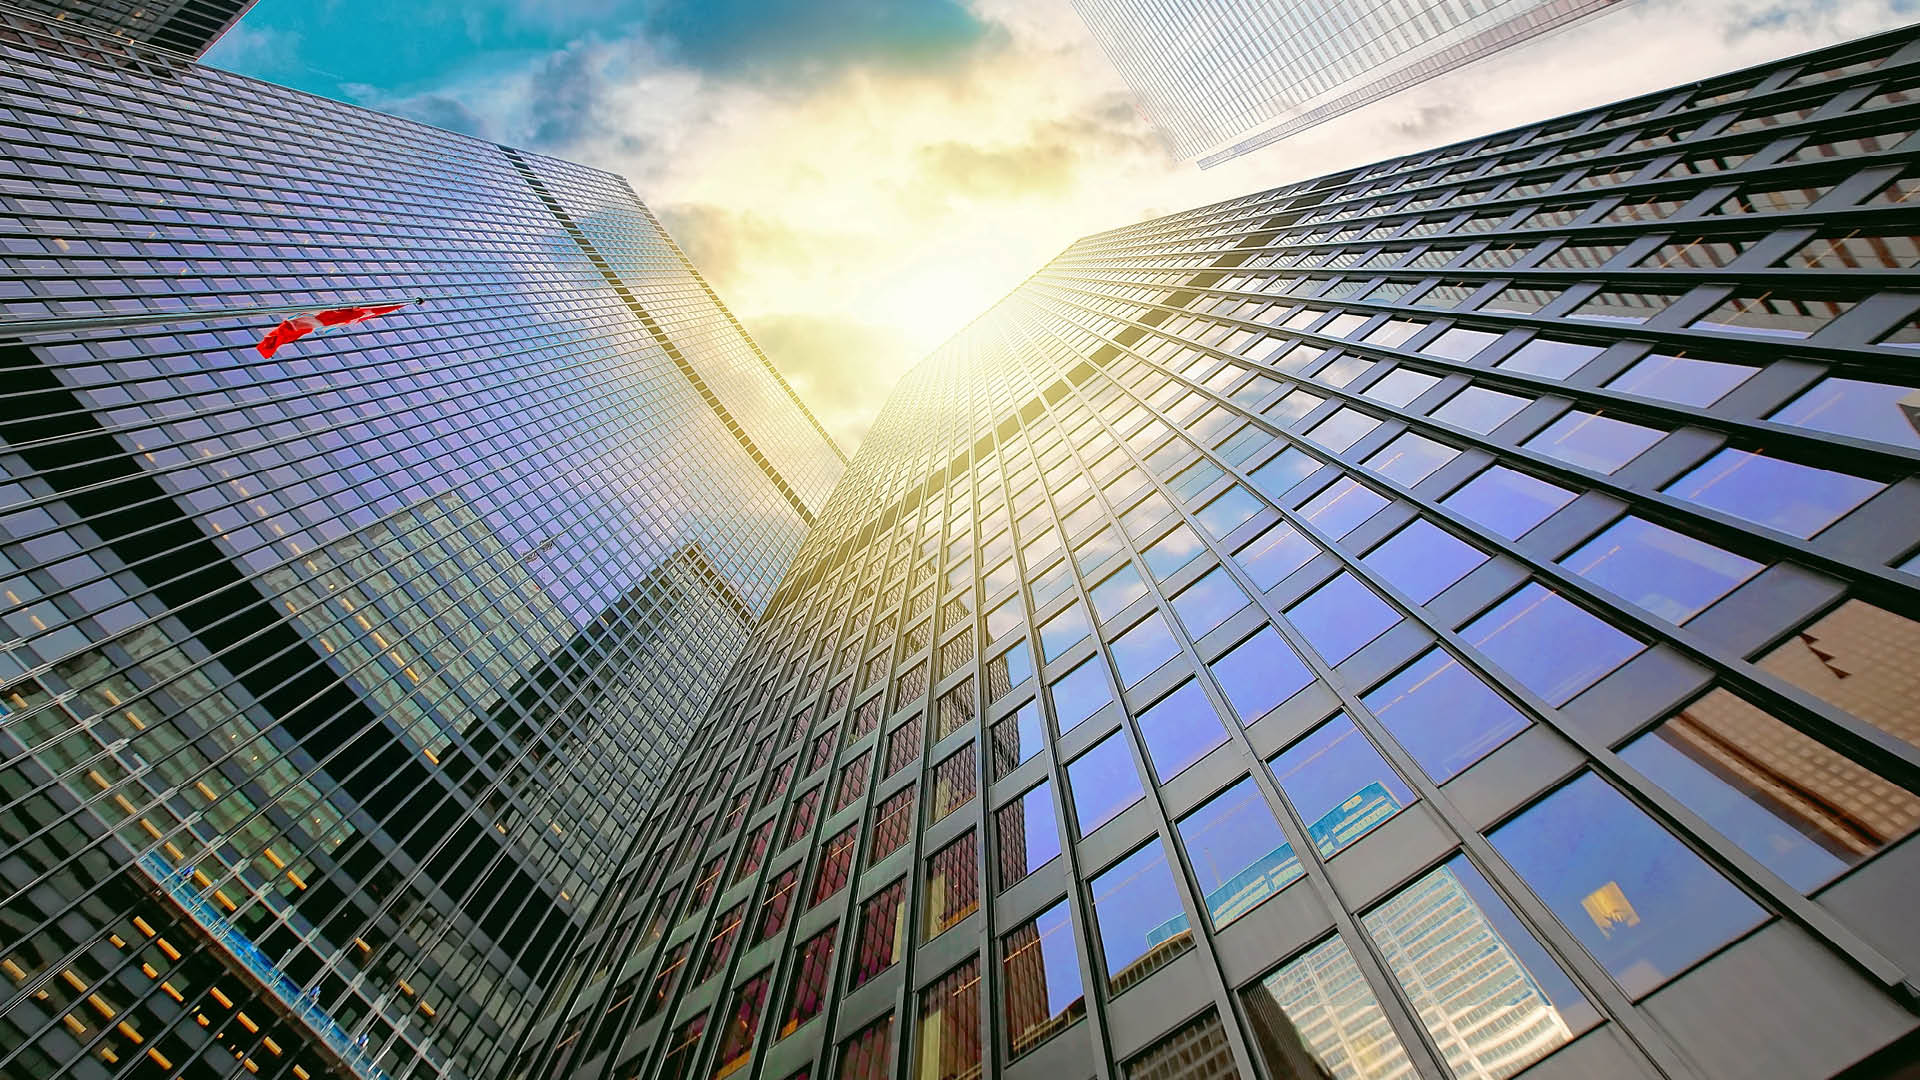 Senior management responsibility in financial services